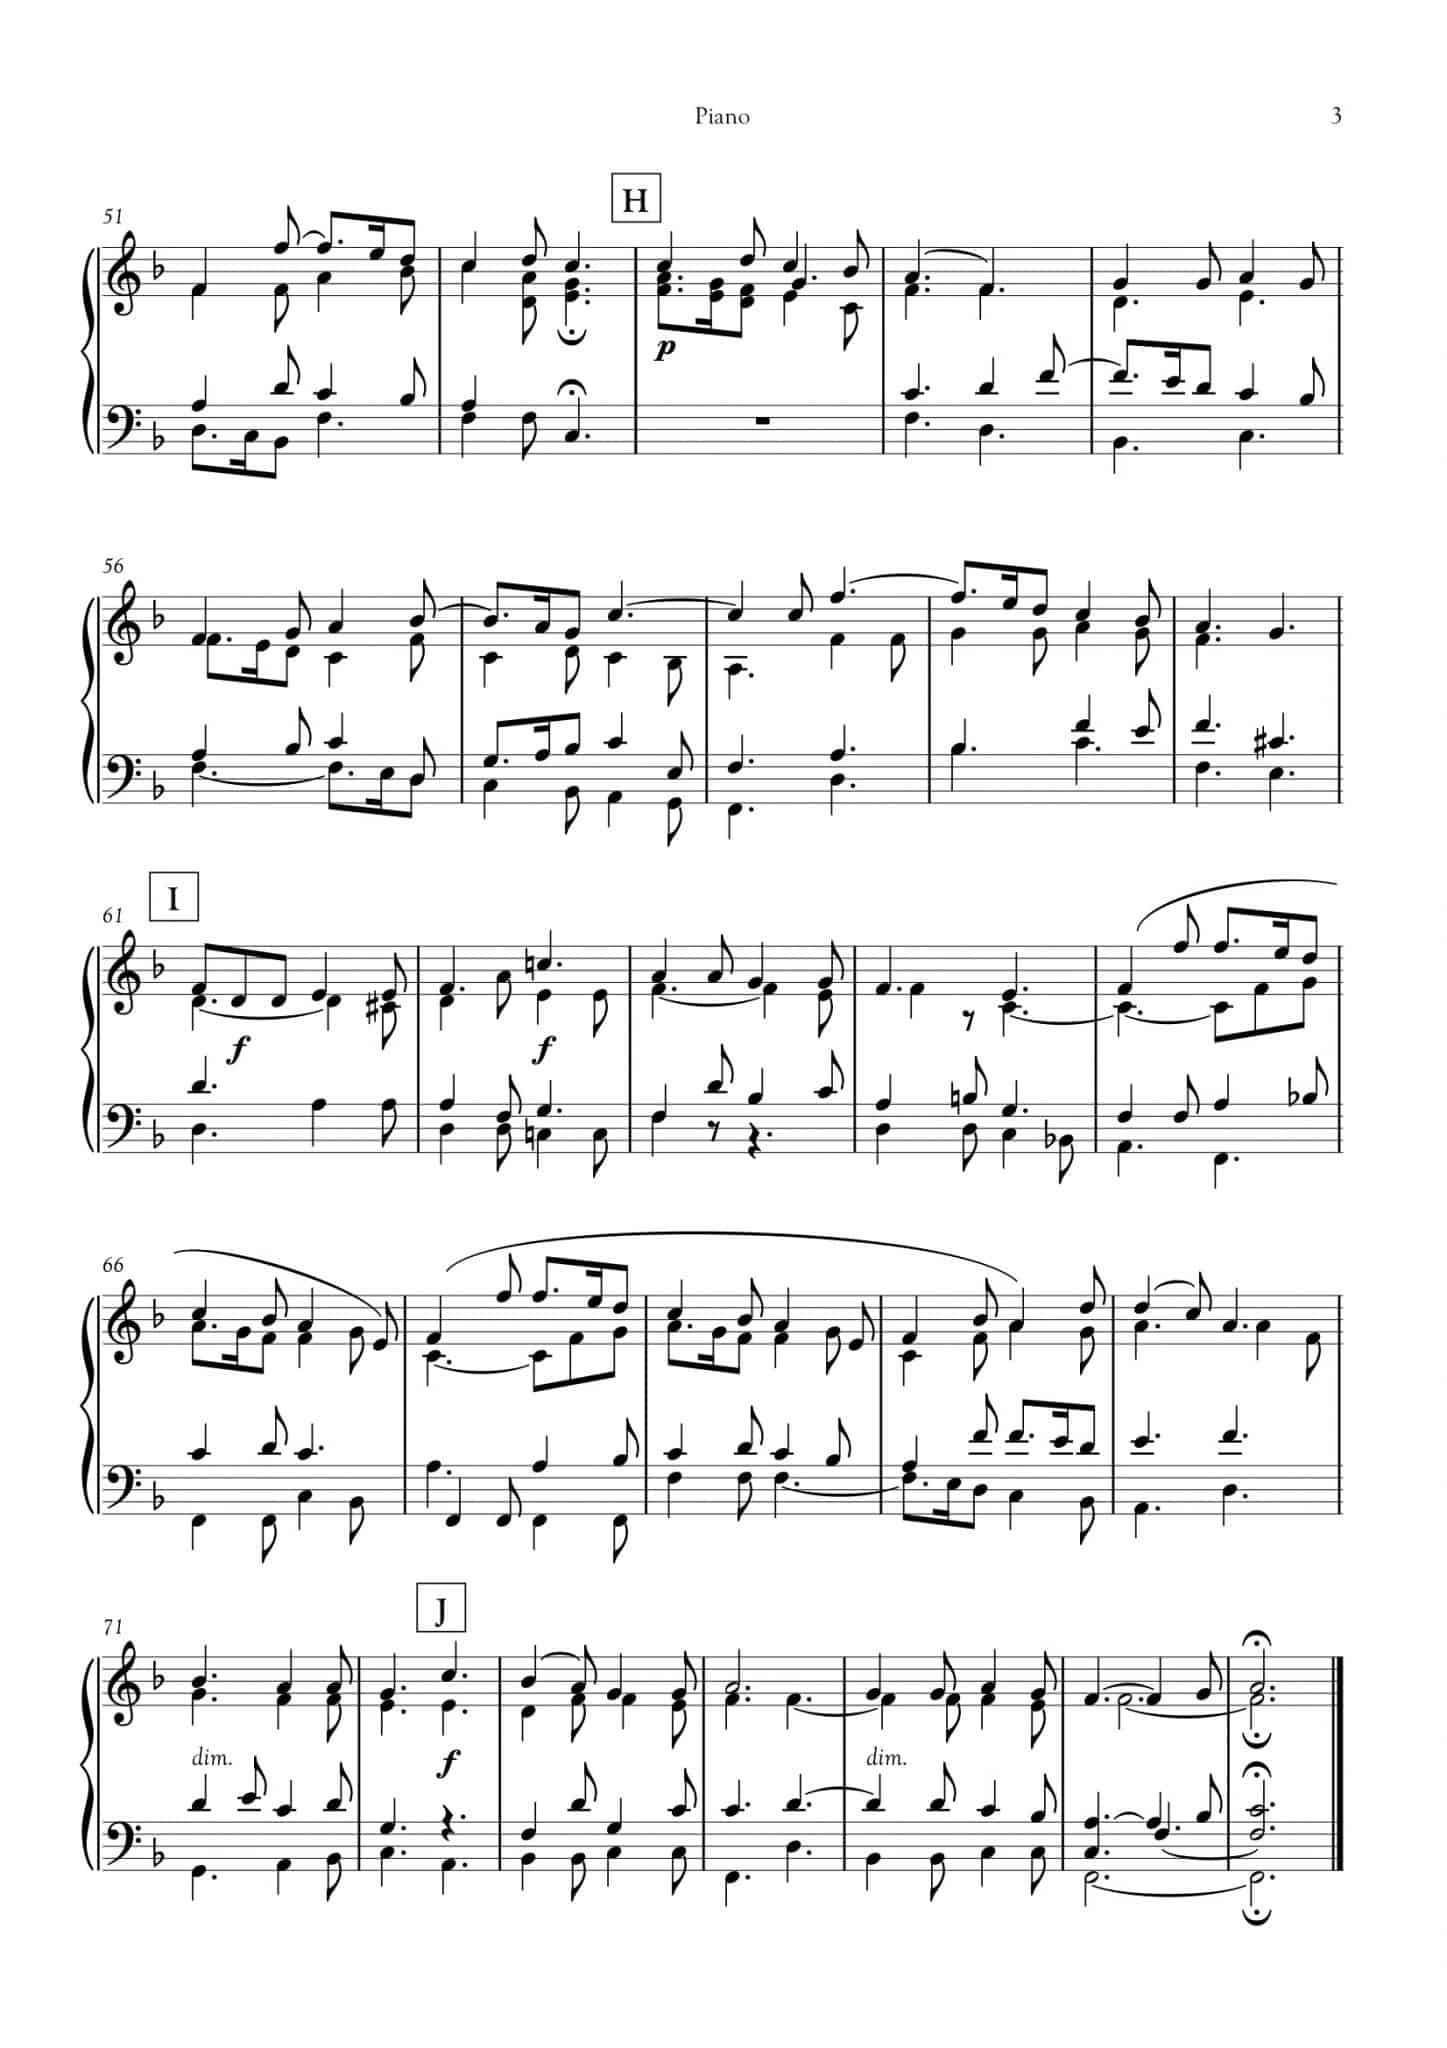 Simply Flute - In Dulci Jubilo - all parts_title sheet_no words copy_Part20